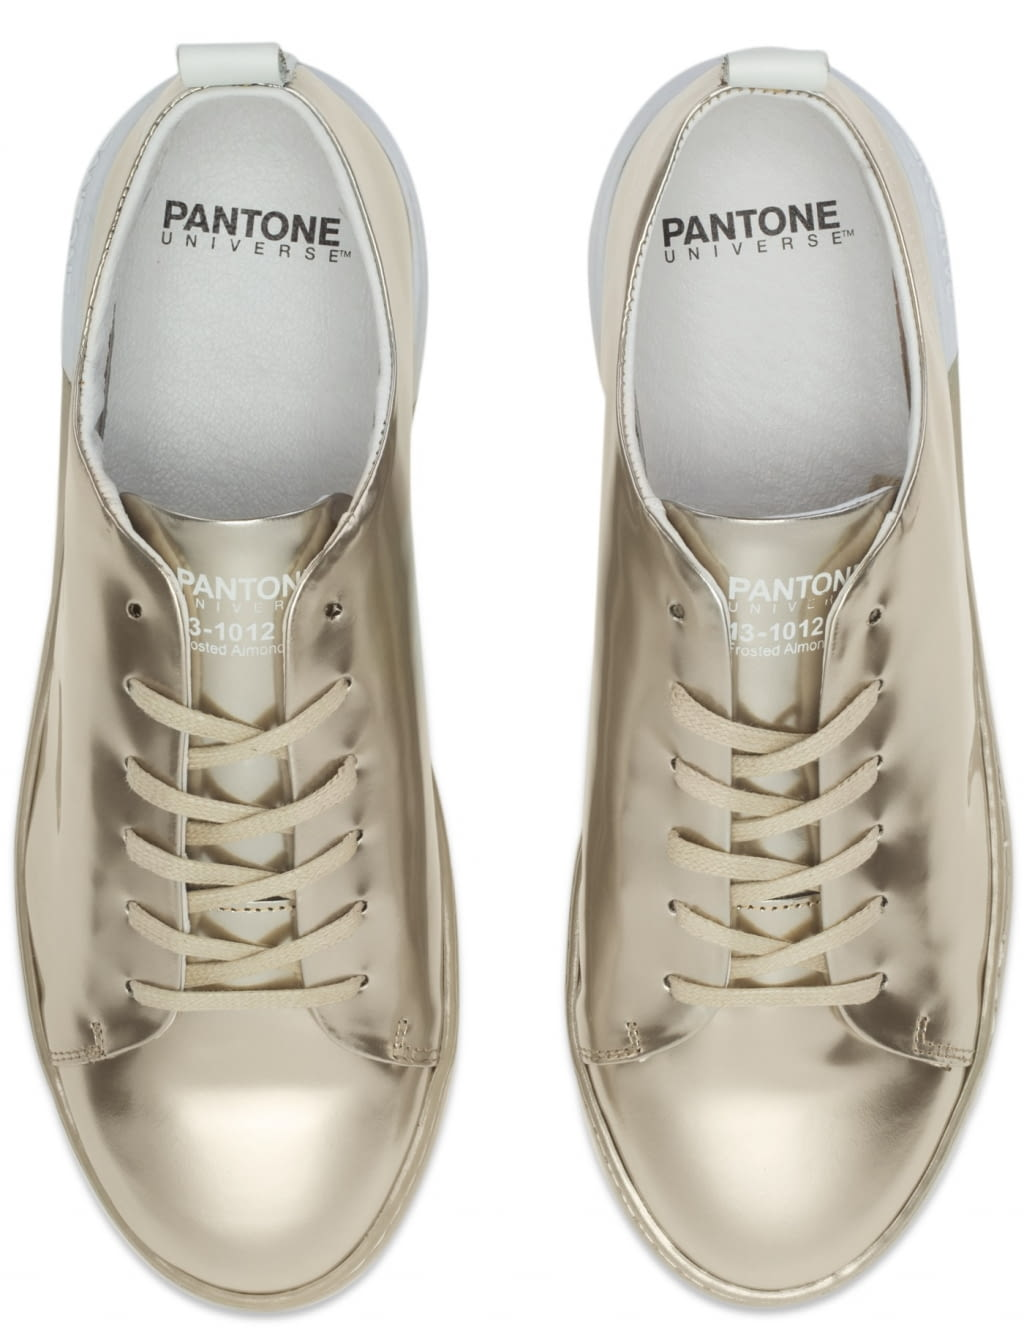 PANTONE UNIVERSE NYC Metallic Sneakers